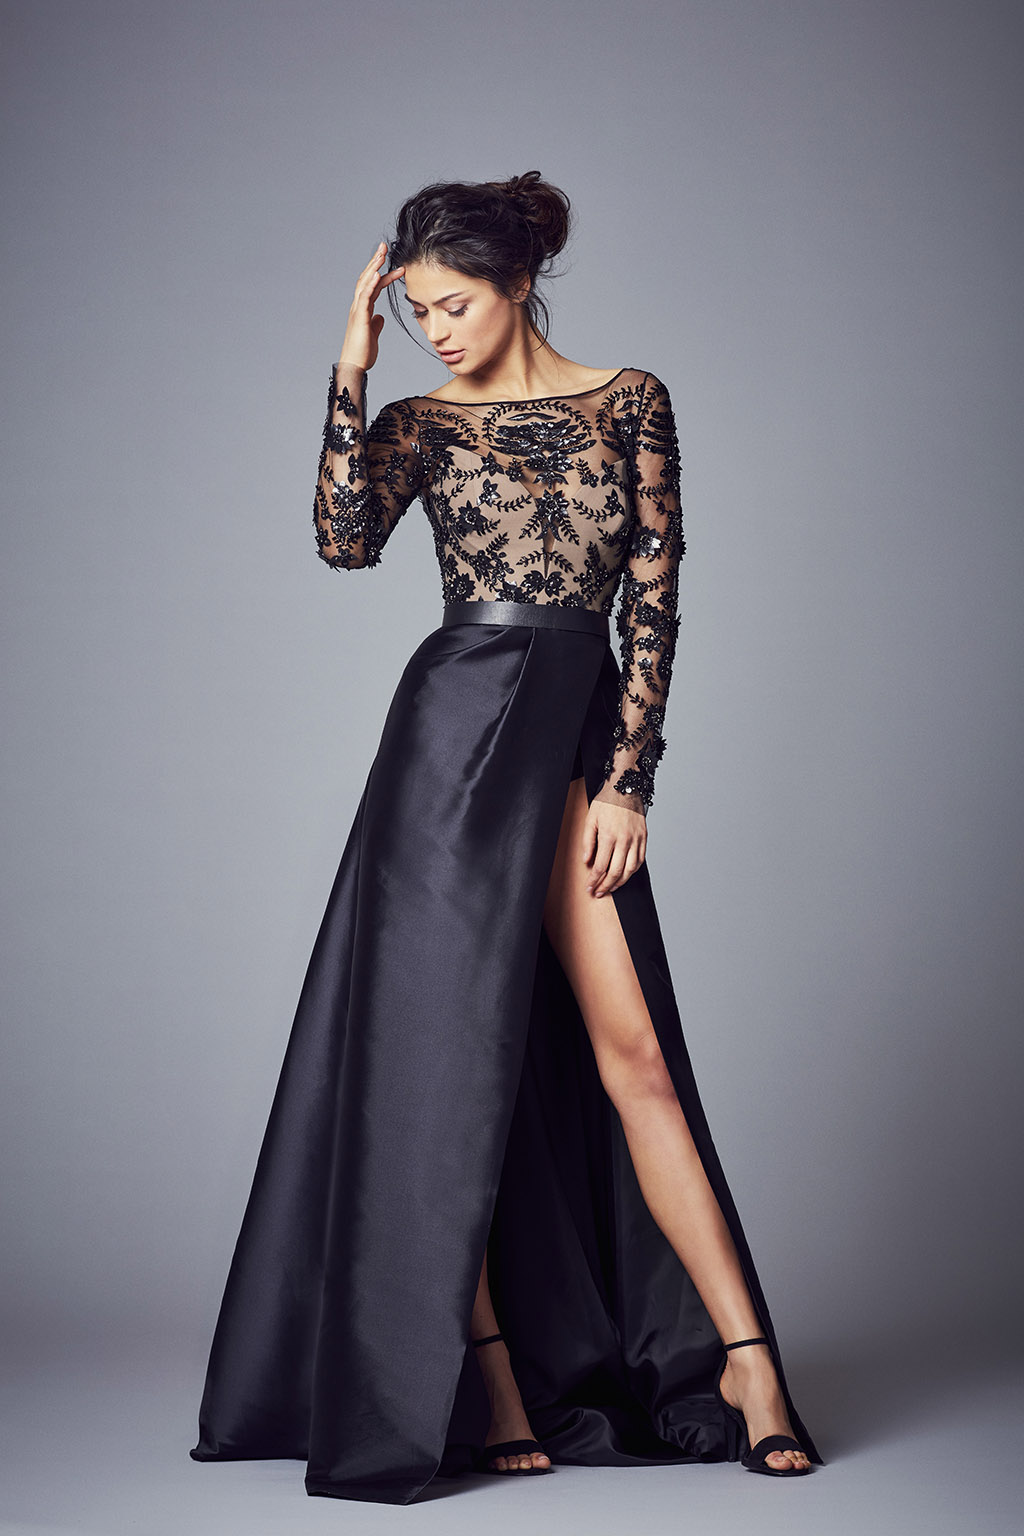 Gown evening dress